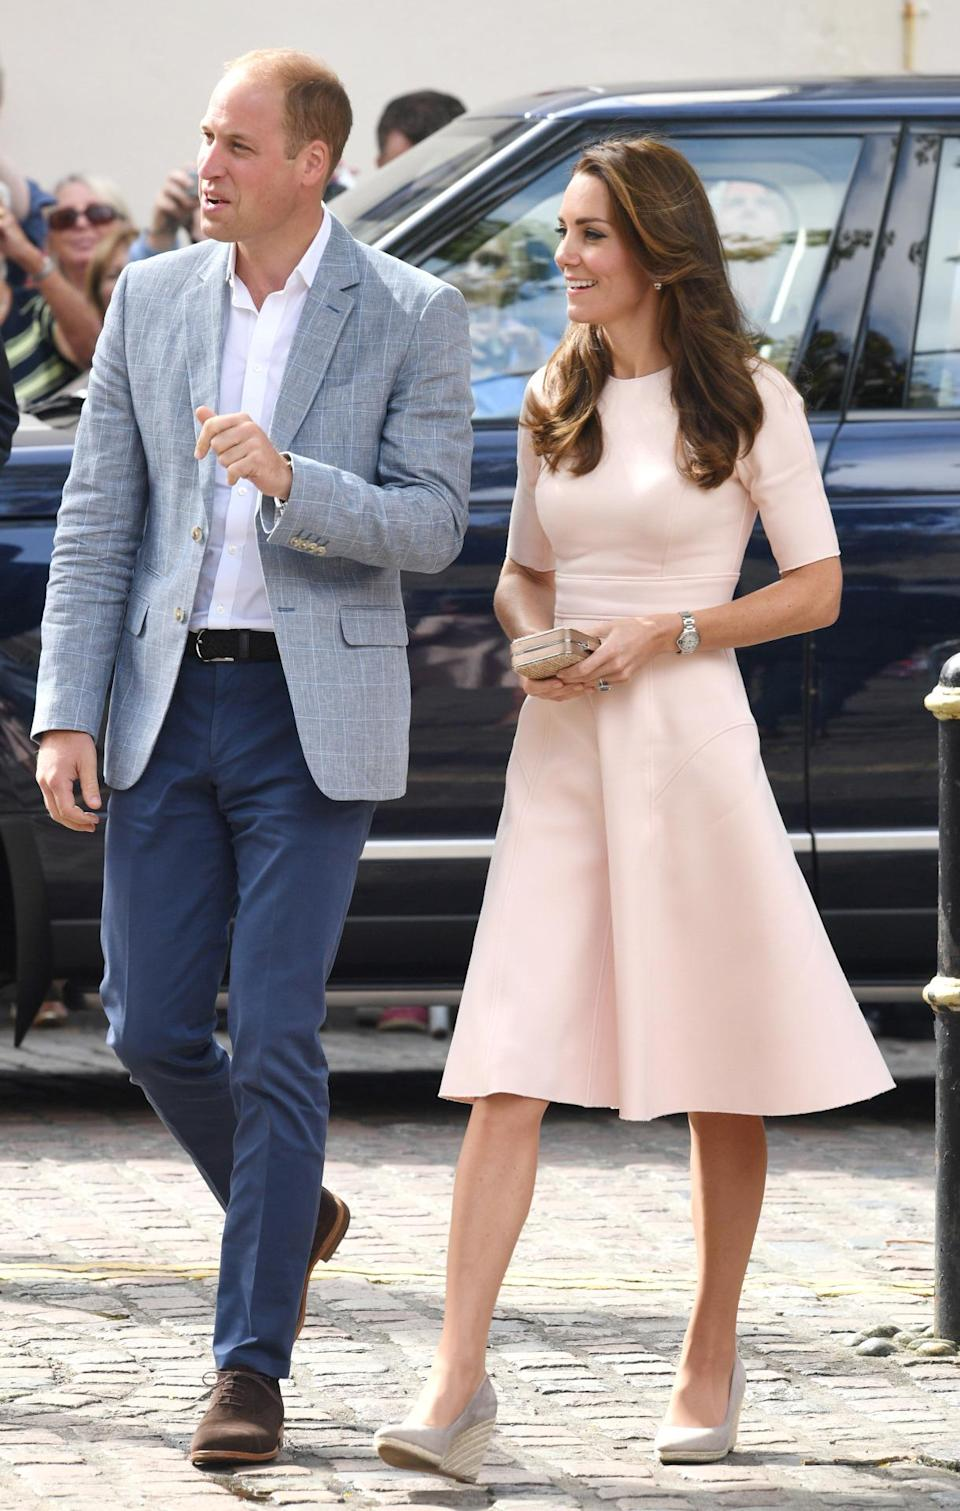 <p>Looking lovely in pink, the Duchess of Cambridge began an away day in Cornwall with Prince William with a visit to Truro Cathedral. For the occasion, the 34-year-old donned a simple dress by US designer Lela Rose, which costs around £1000. Kate paired the dress with her go-to Monsoon dove grey wedges and carried a box clutch. </p><p><i>[Photo: Rex Features]</i><br></p>